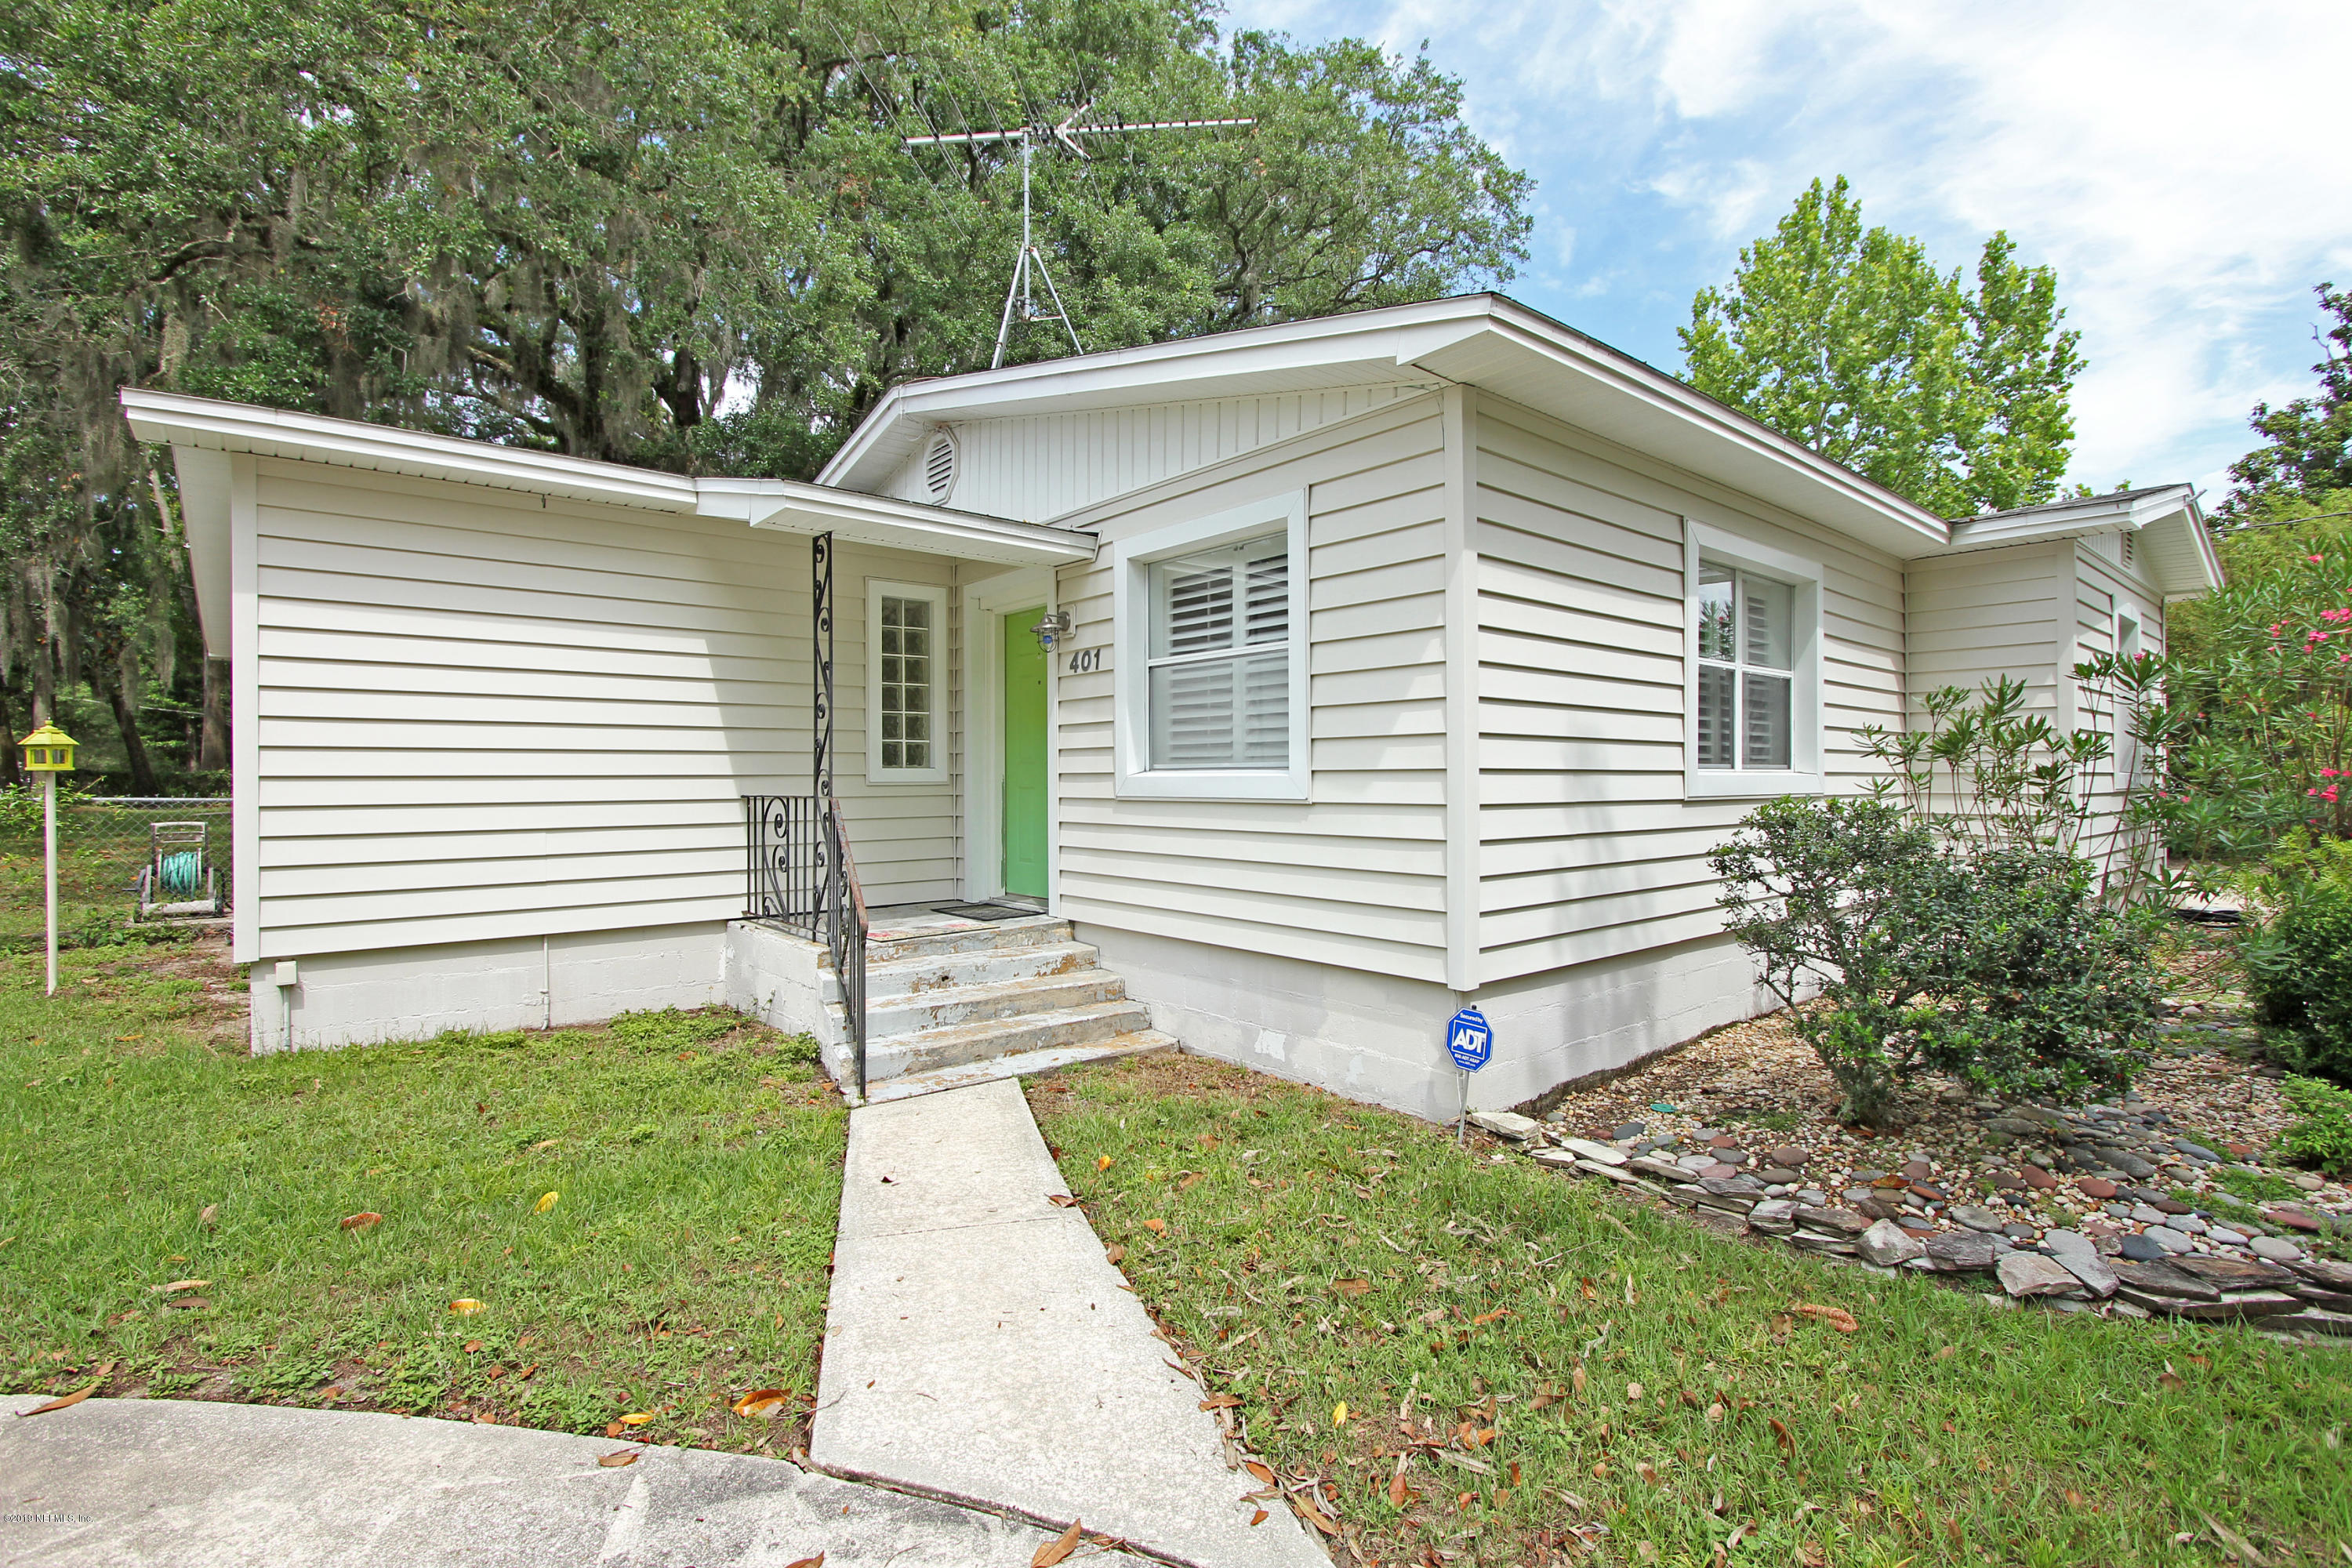 Photo of 401 RUSMOR, ORANGE PARK, FL 32073